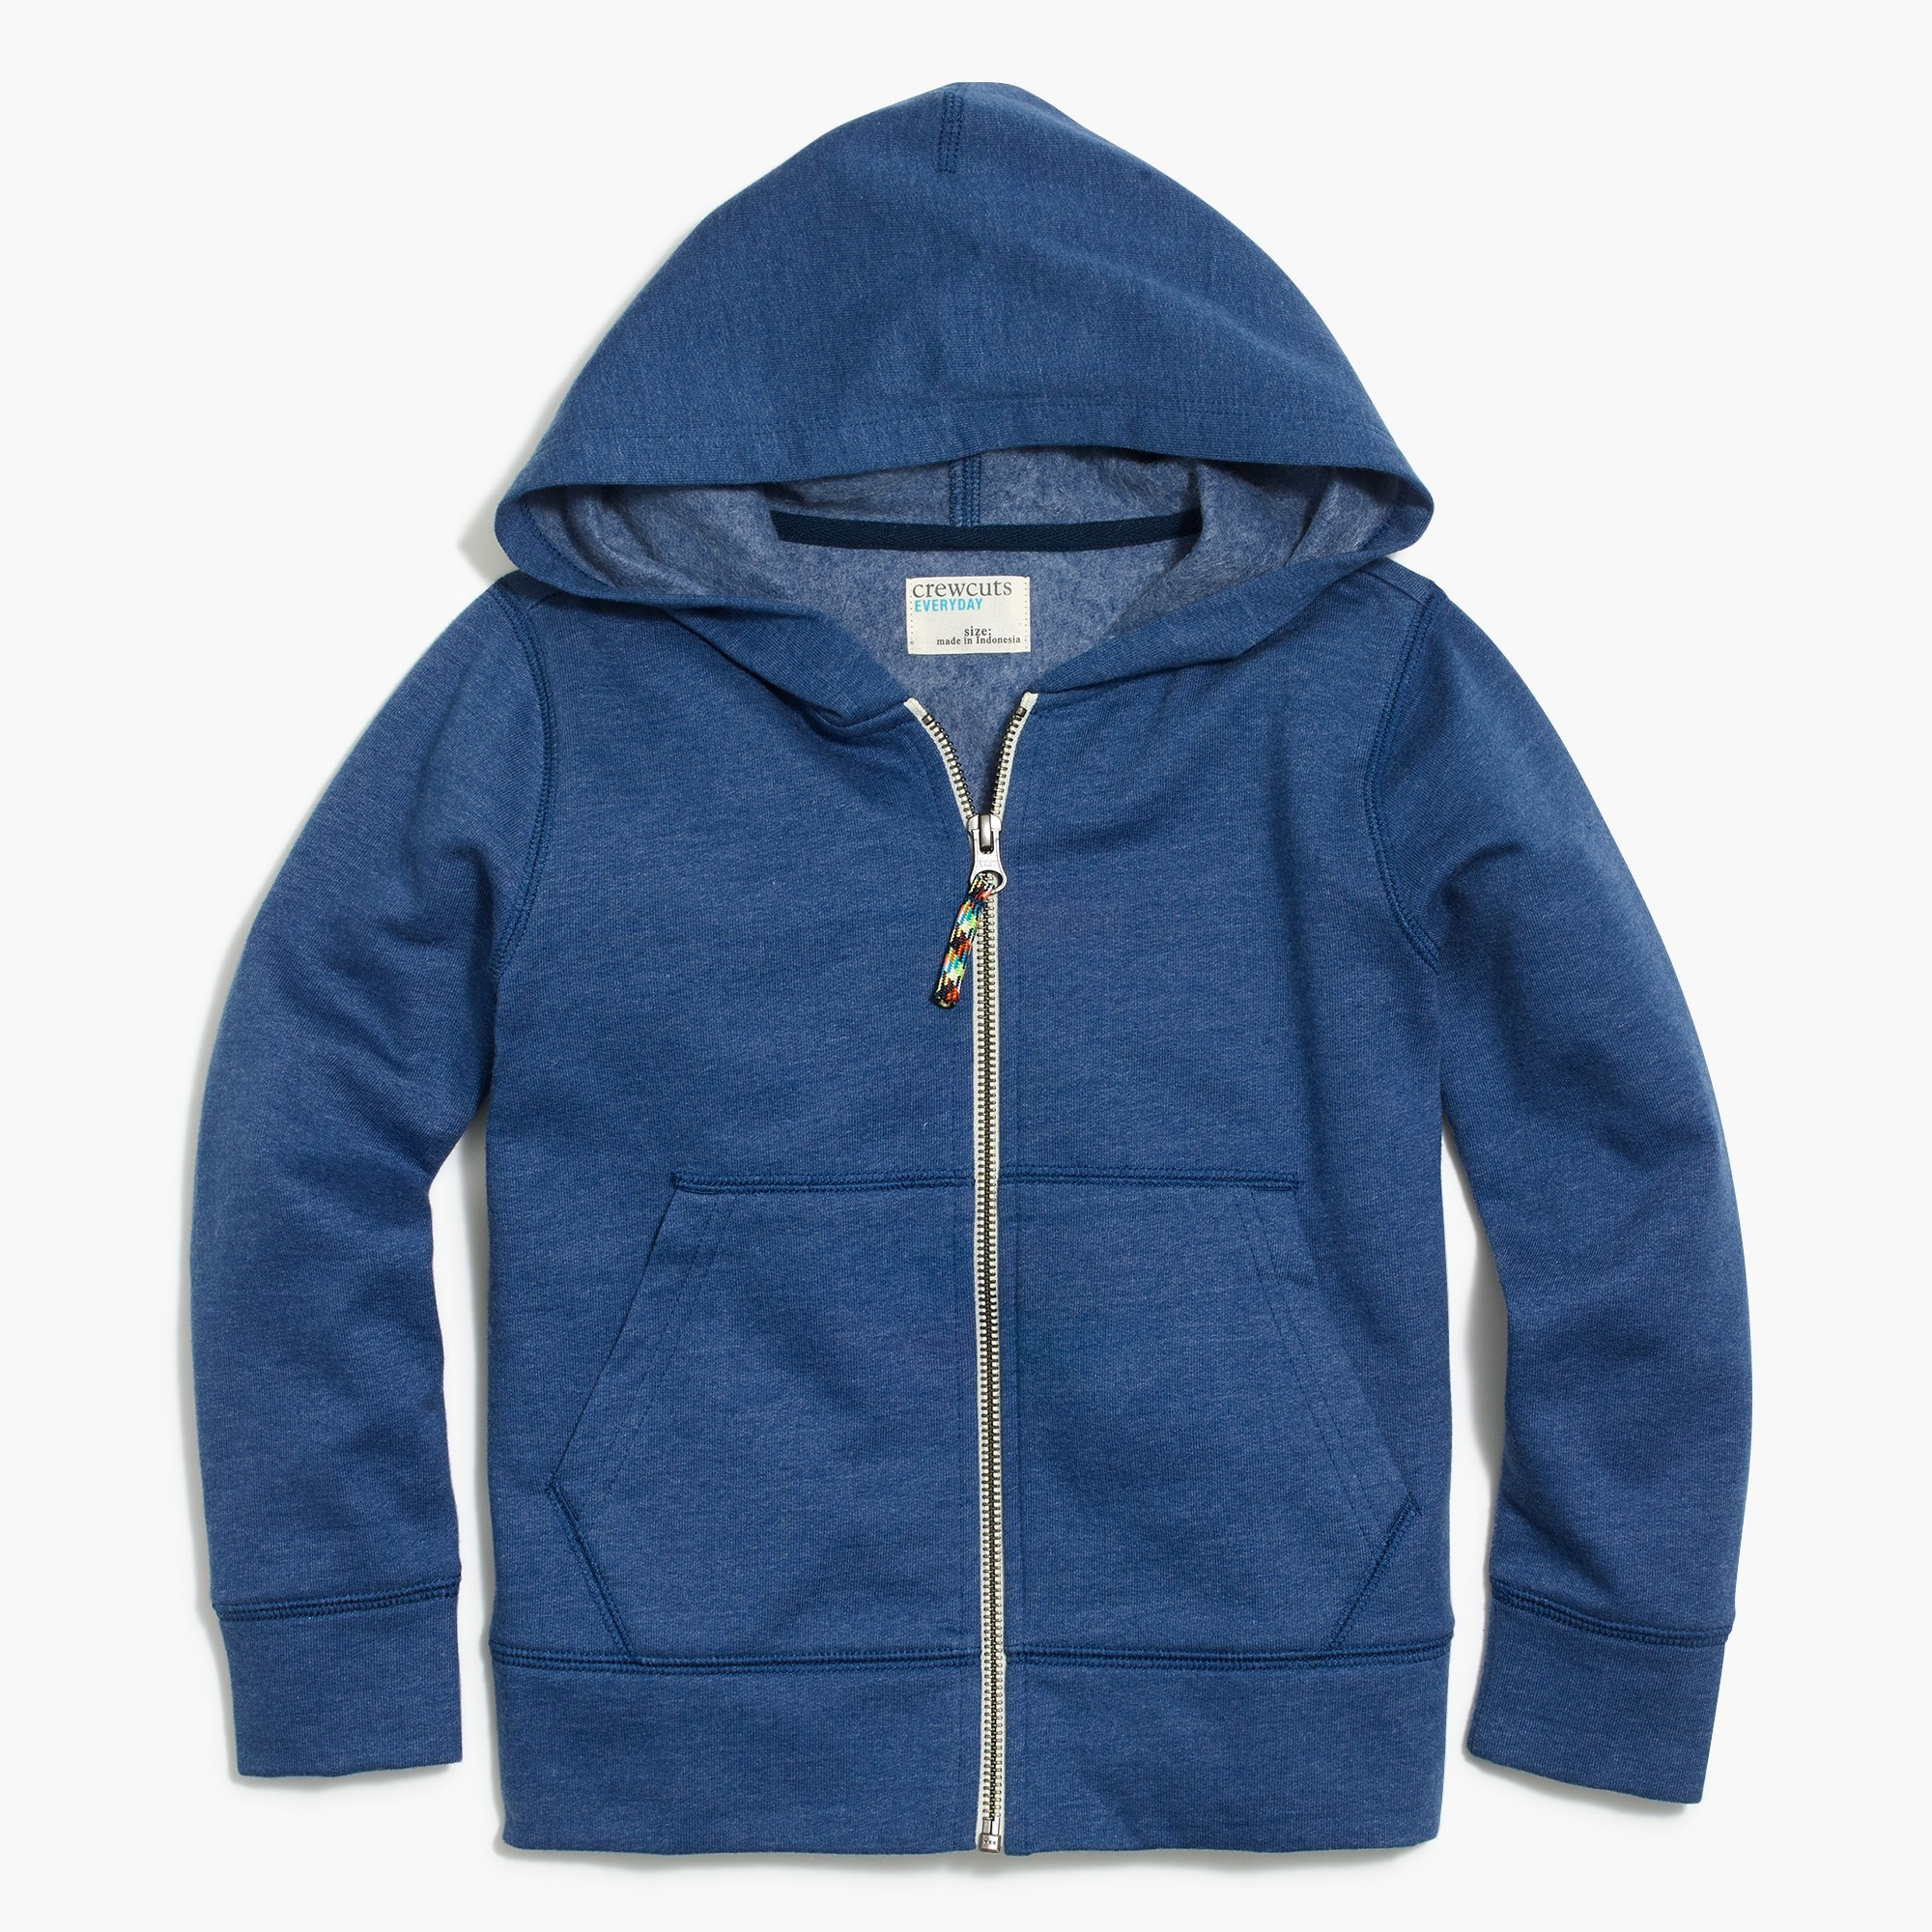 Image 1 for Kids' long-sleeve full-zip hoodie with contrast cord